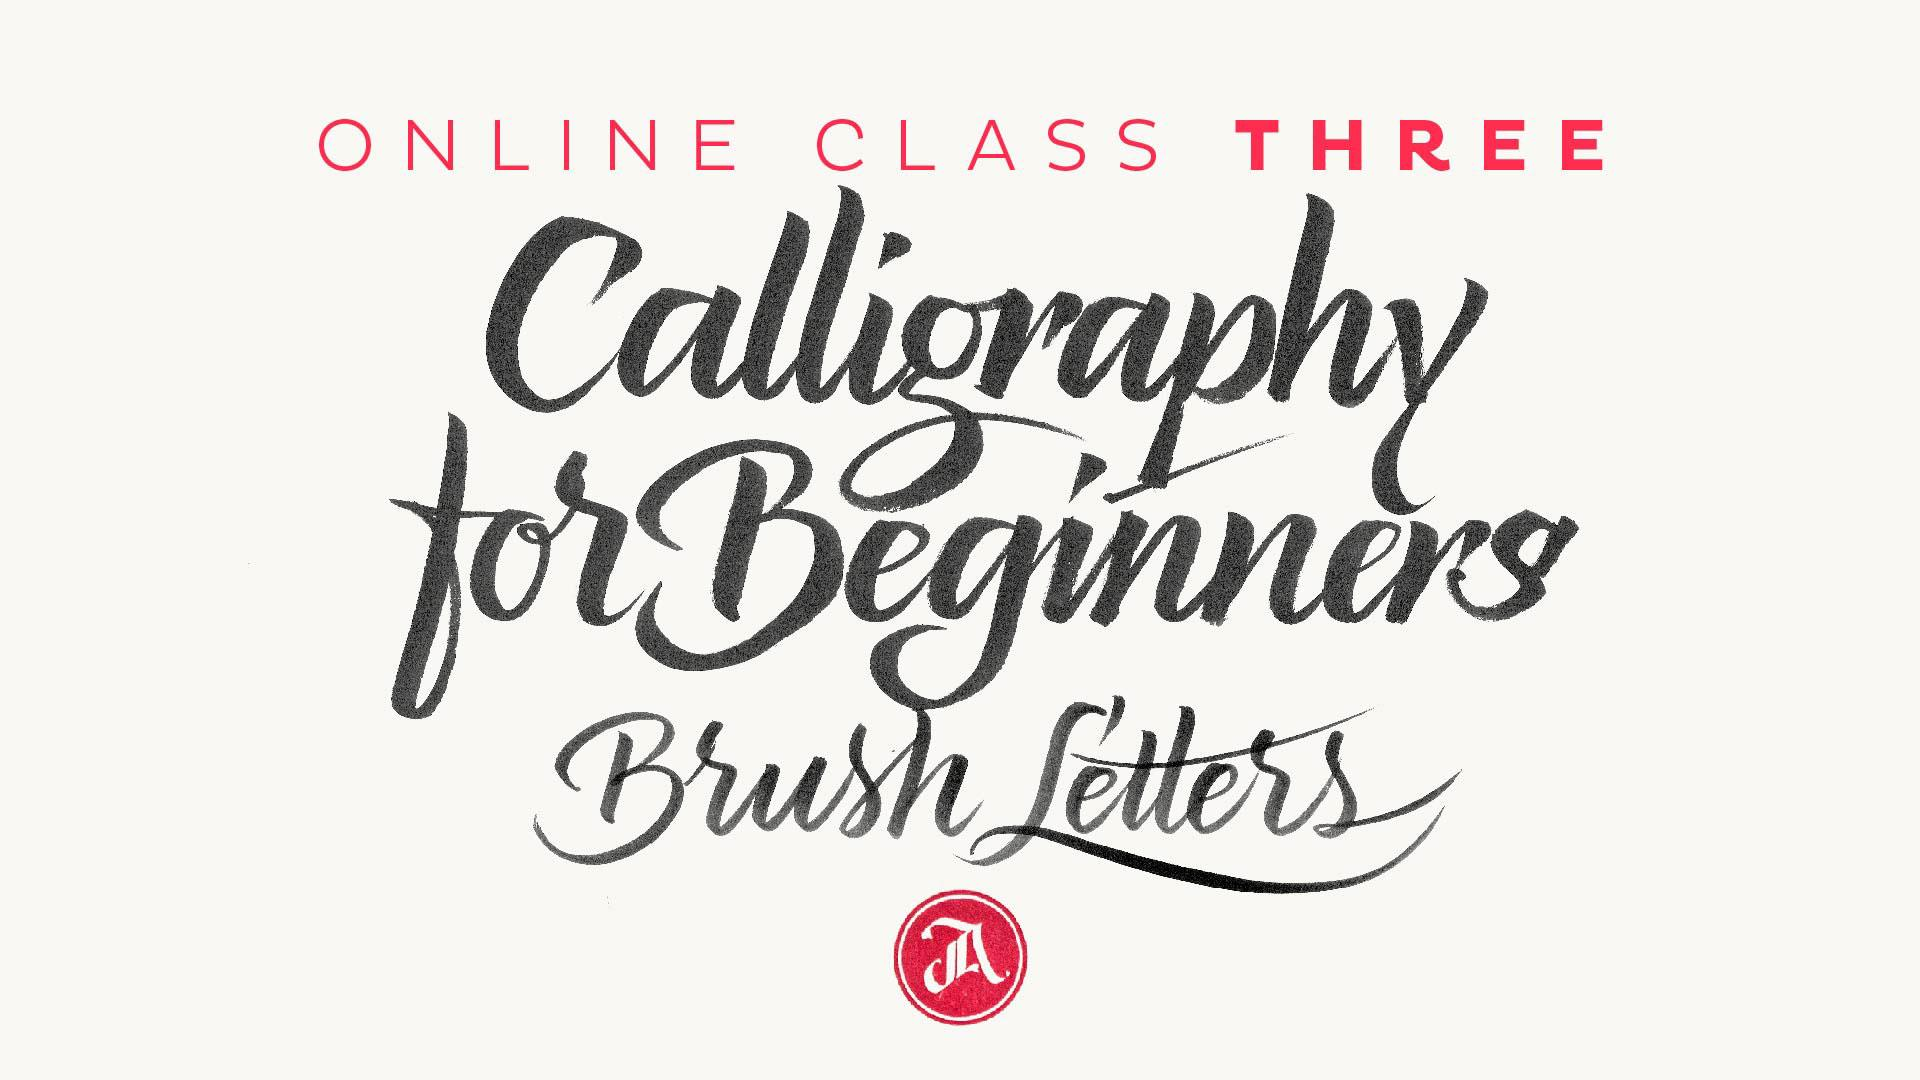 Calligraphy For Beginners Is A Three Class Sequence Anyone Who Wants To Start Studying This The Final Part Of That